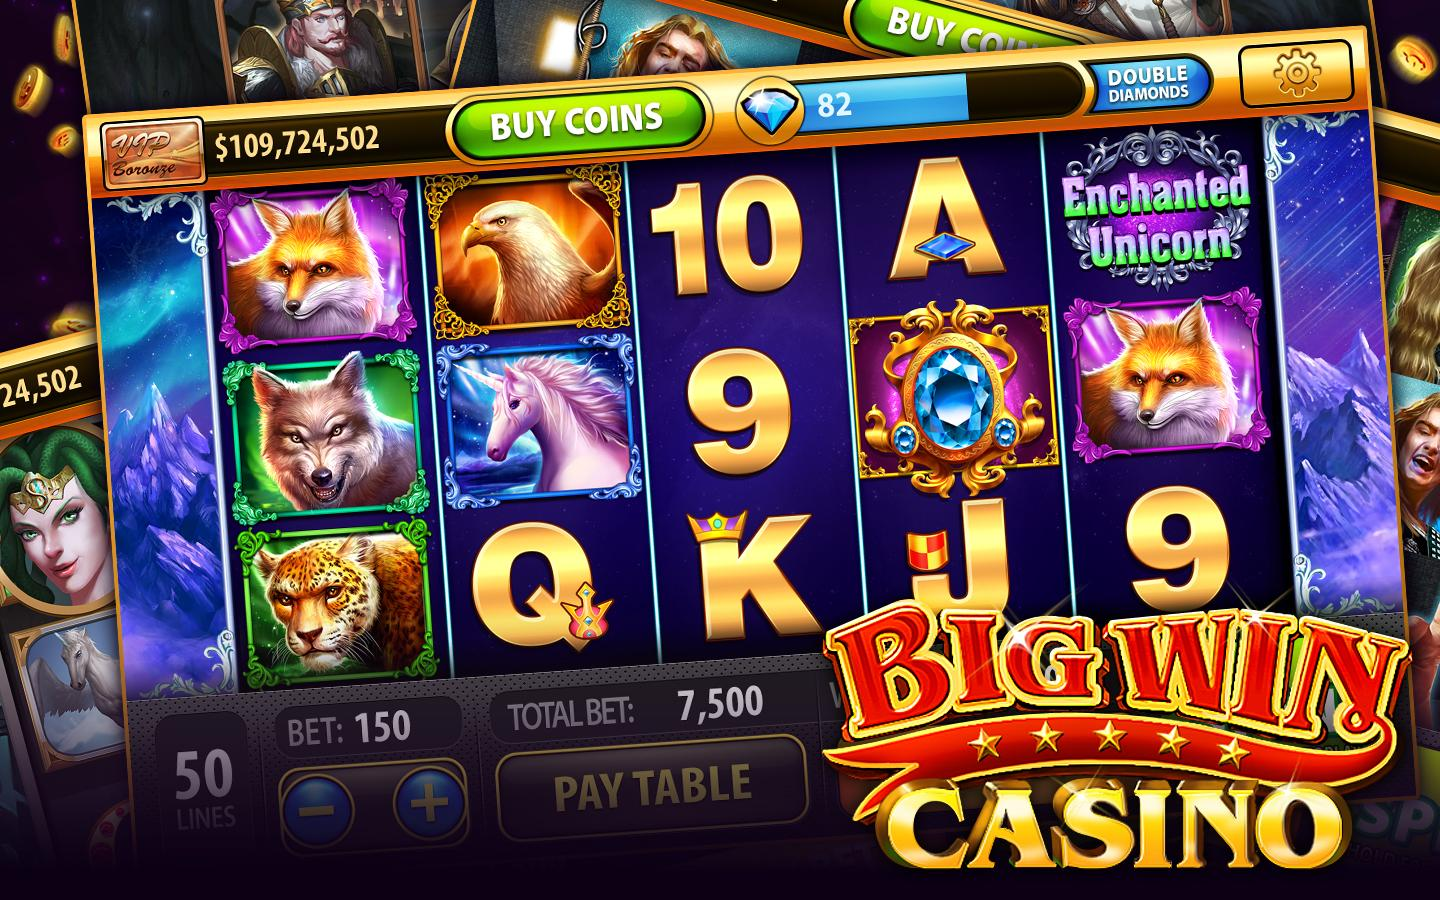 Free Video Slots Online - Win at Video Slot Machines Now! No Download or Registration - 1